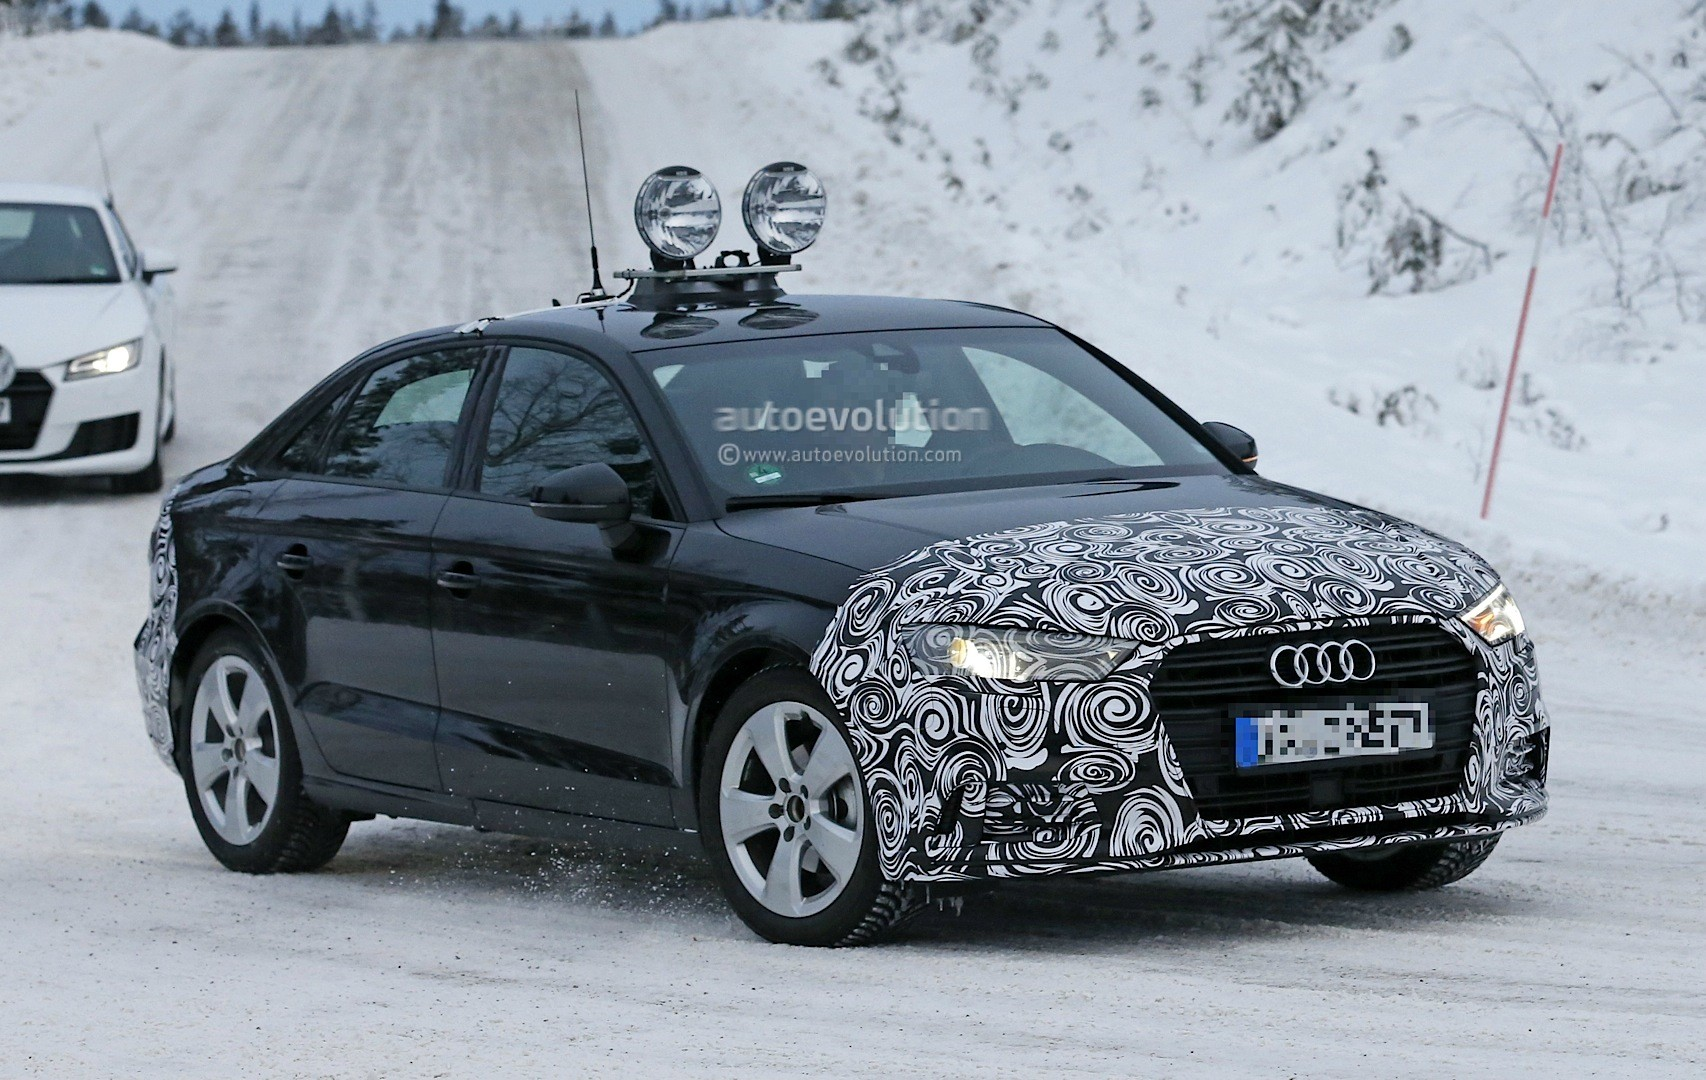 2016 audi a3 sedan facelift spied for the first time starts winter testing with tt autoevolution. Black Bedroom Furniture Sets. Home Design Ideas